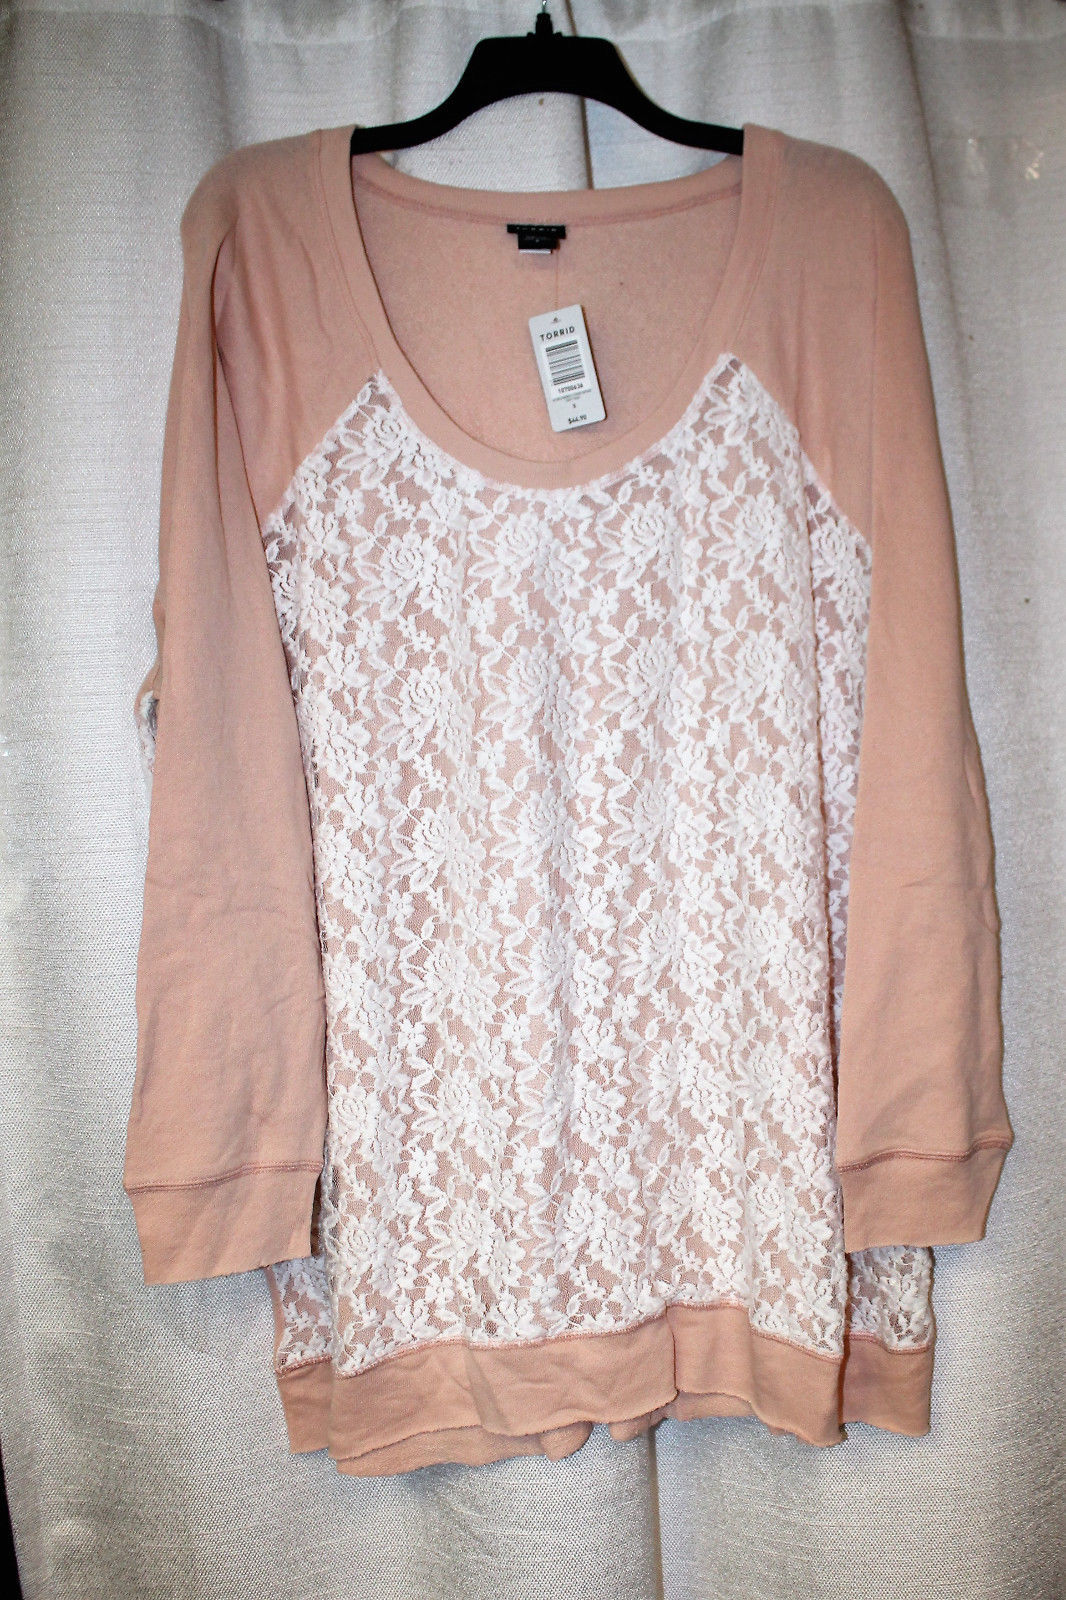 NEW TORRID WOMENS PLUS SIZE 5X 5 LIGHT PINK SWEATSHIRT WITH WHITE LACE OVERLAY - $30.95